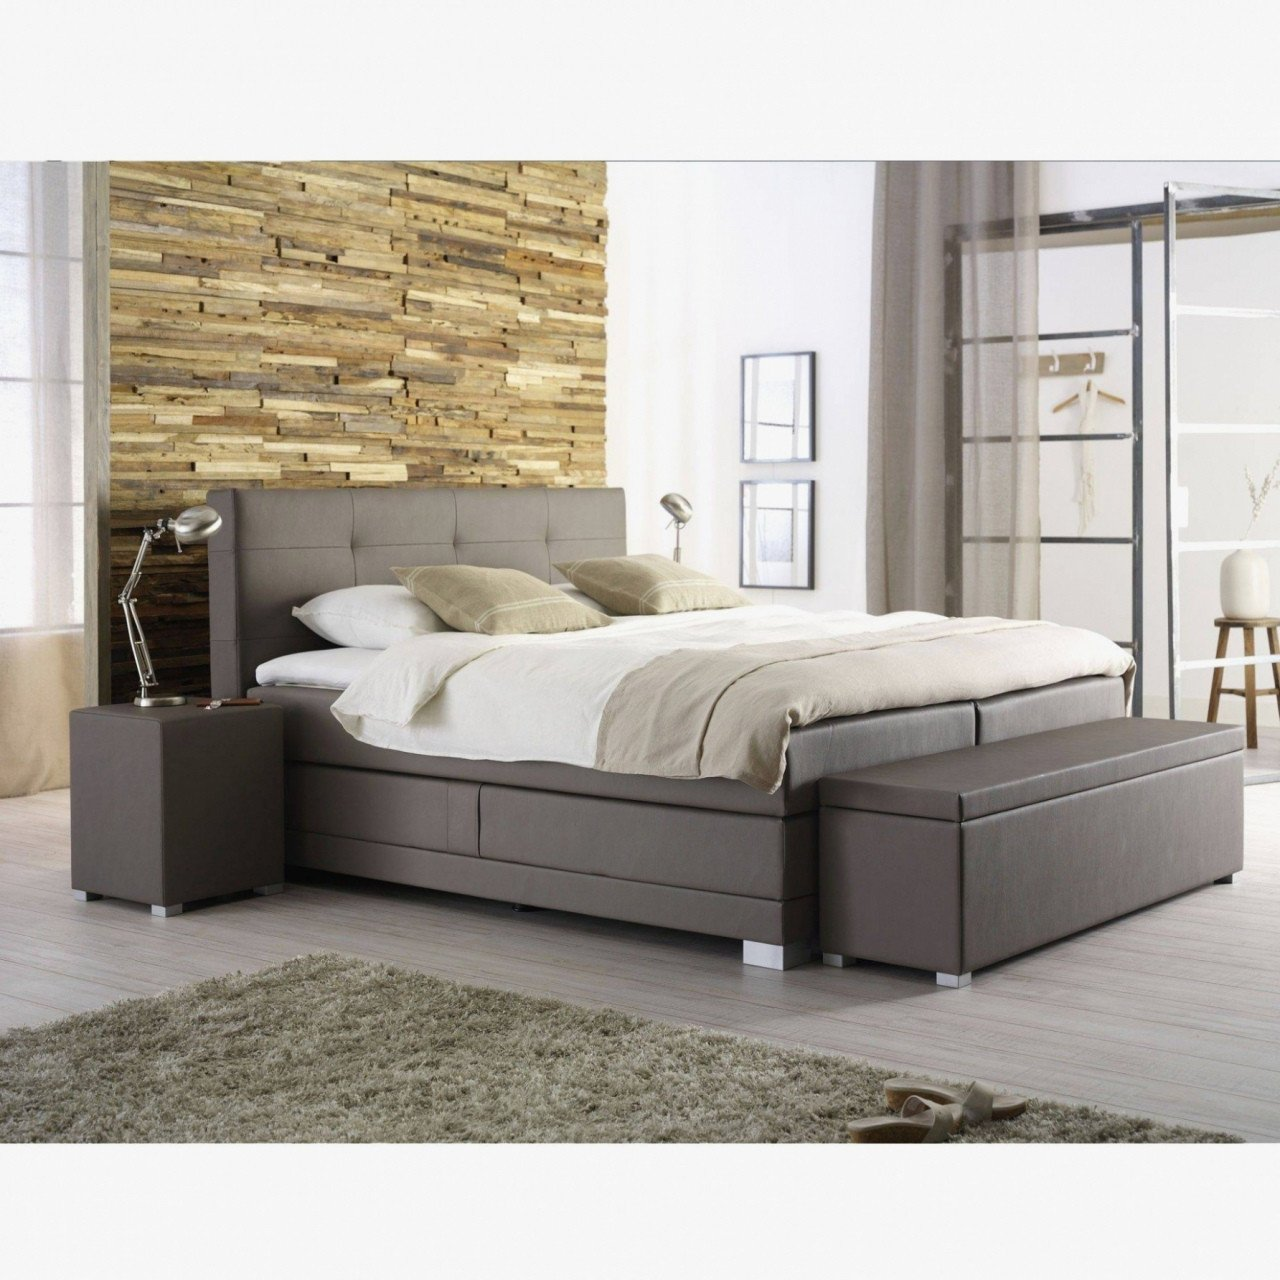 Twin Bed Bedroom Set Best Of Drawers Under Bed — Procura Home Blog